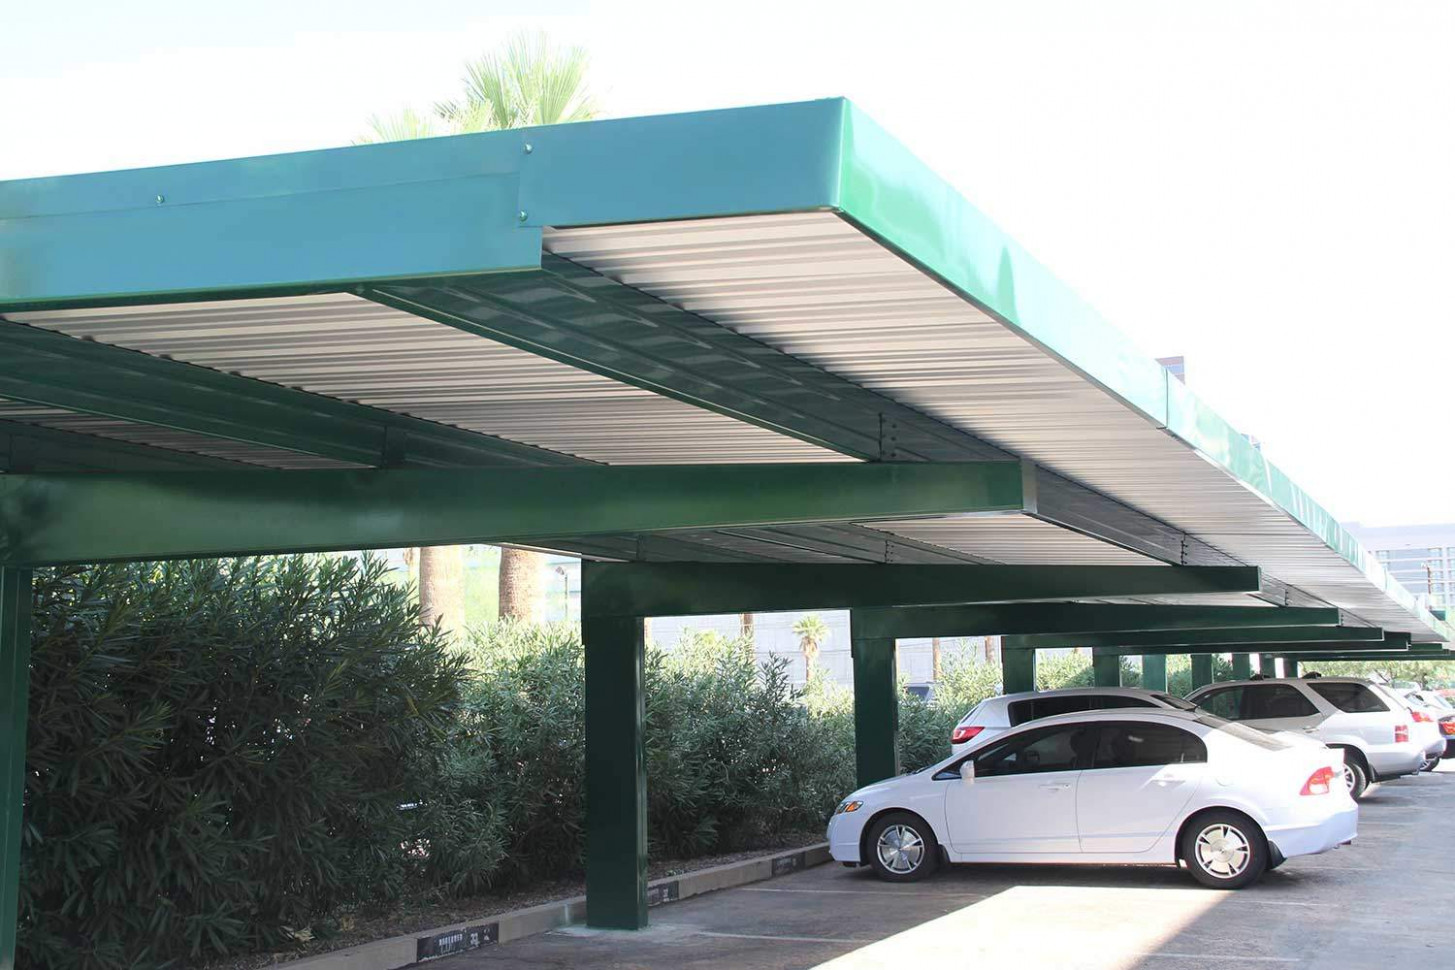 Commercial Carports and Covered Parking Structures